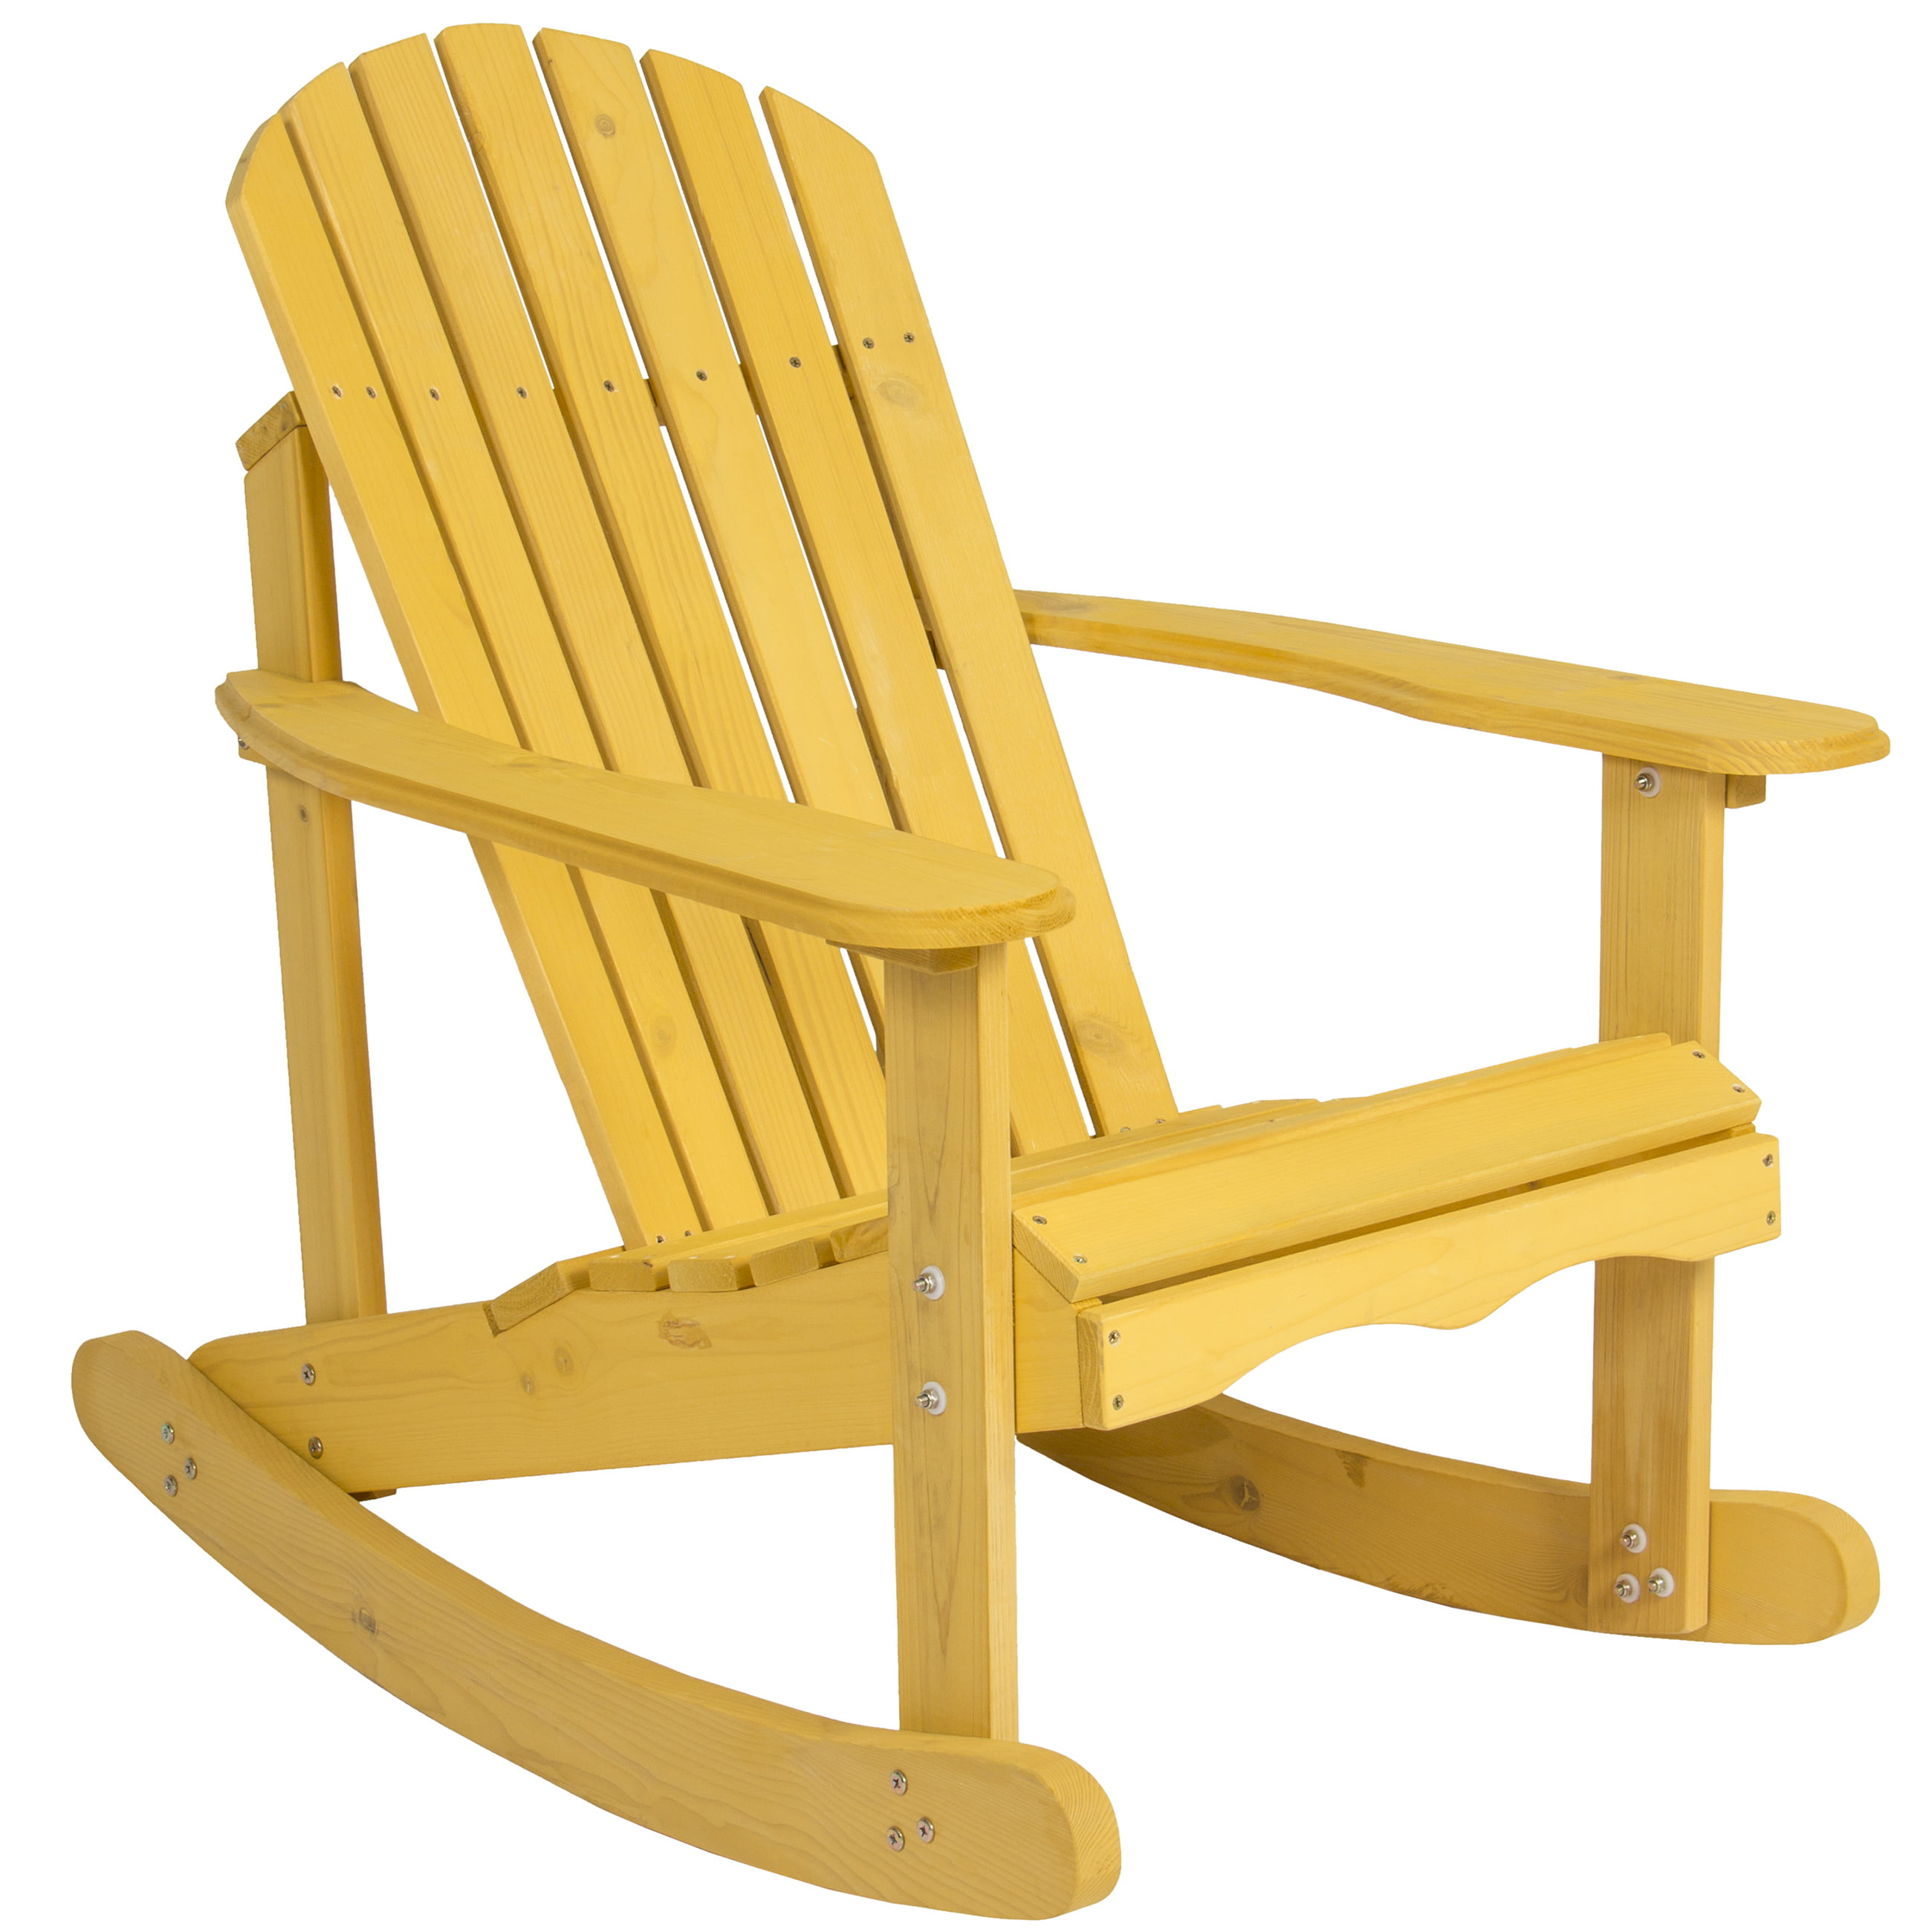 Garden Furniture Chairs outdoor adirondack rocking chair natural fir wood deck garden